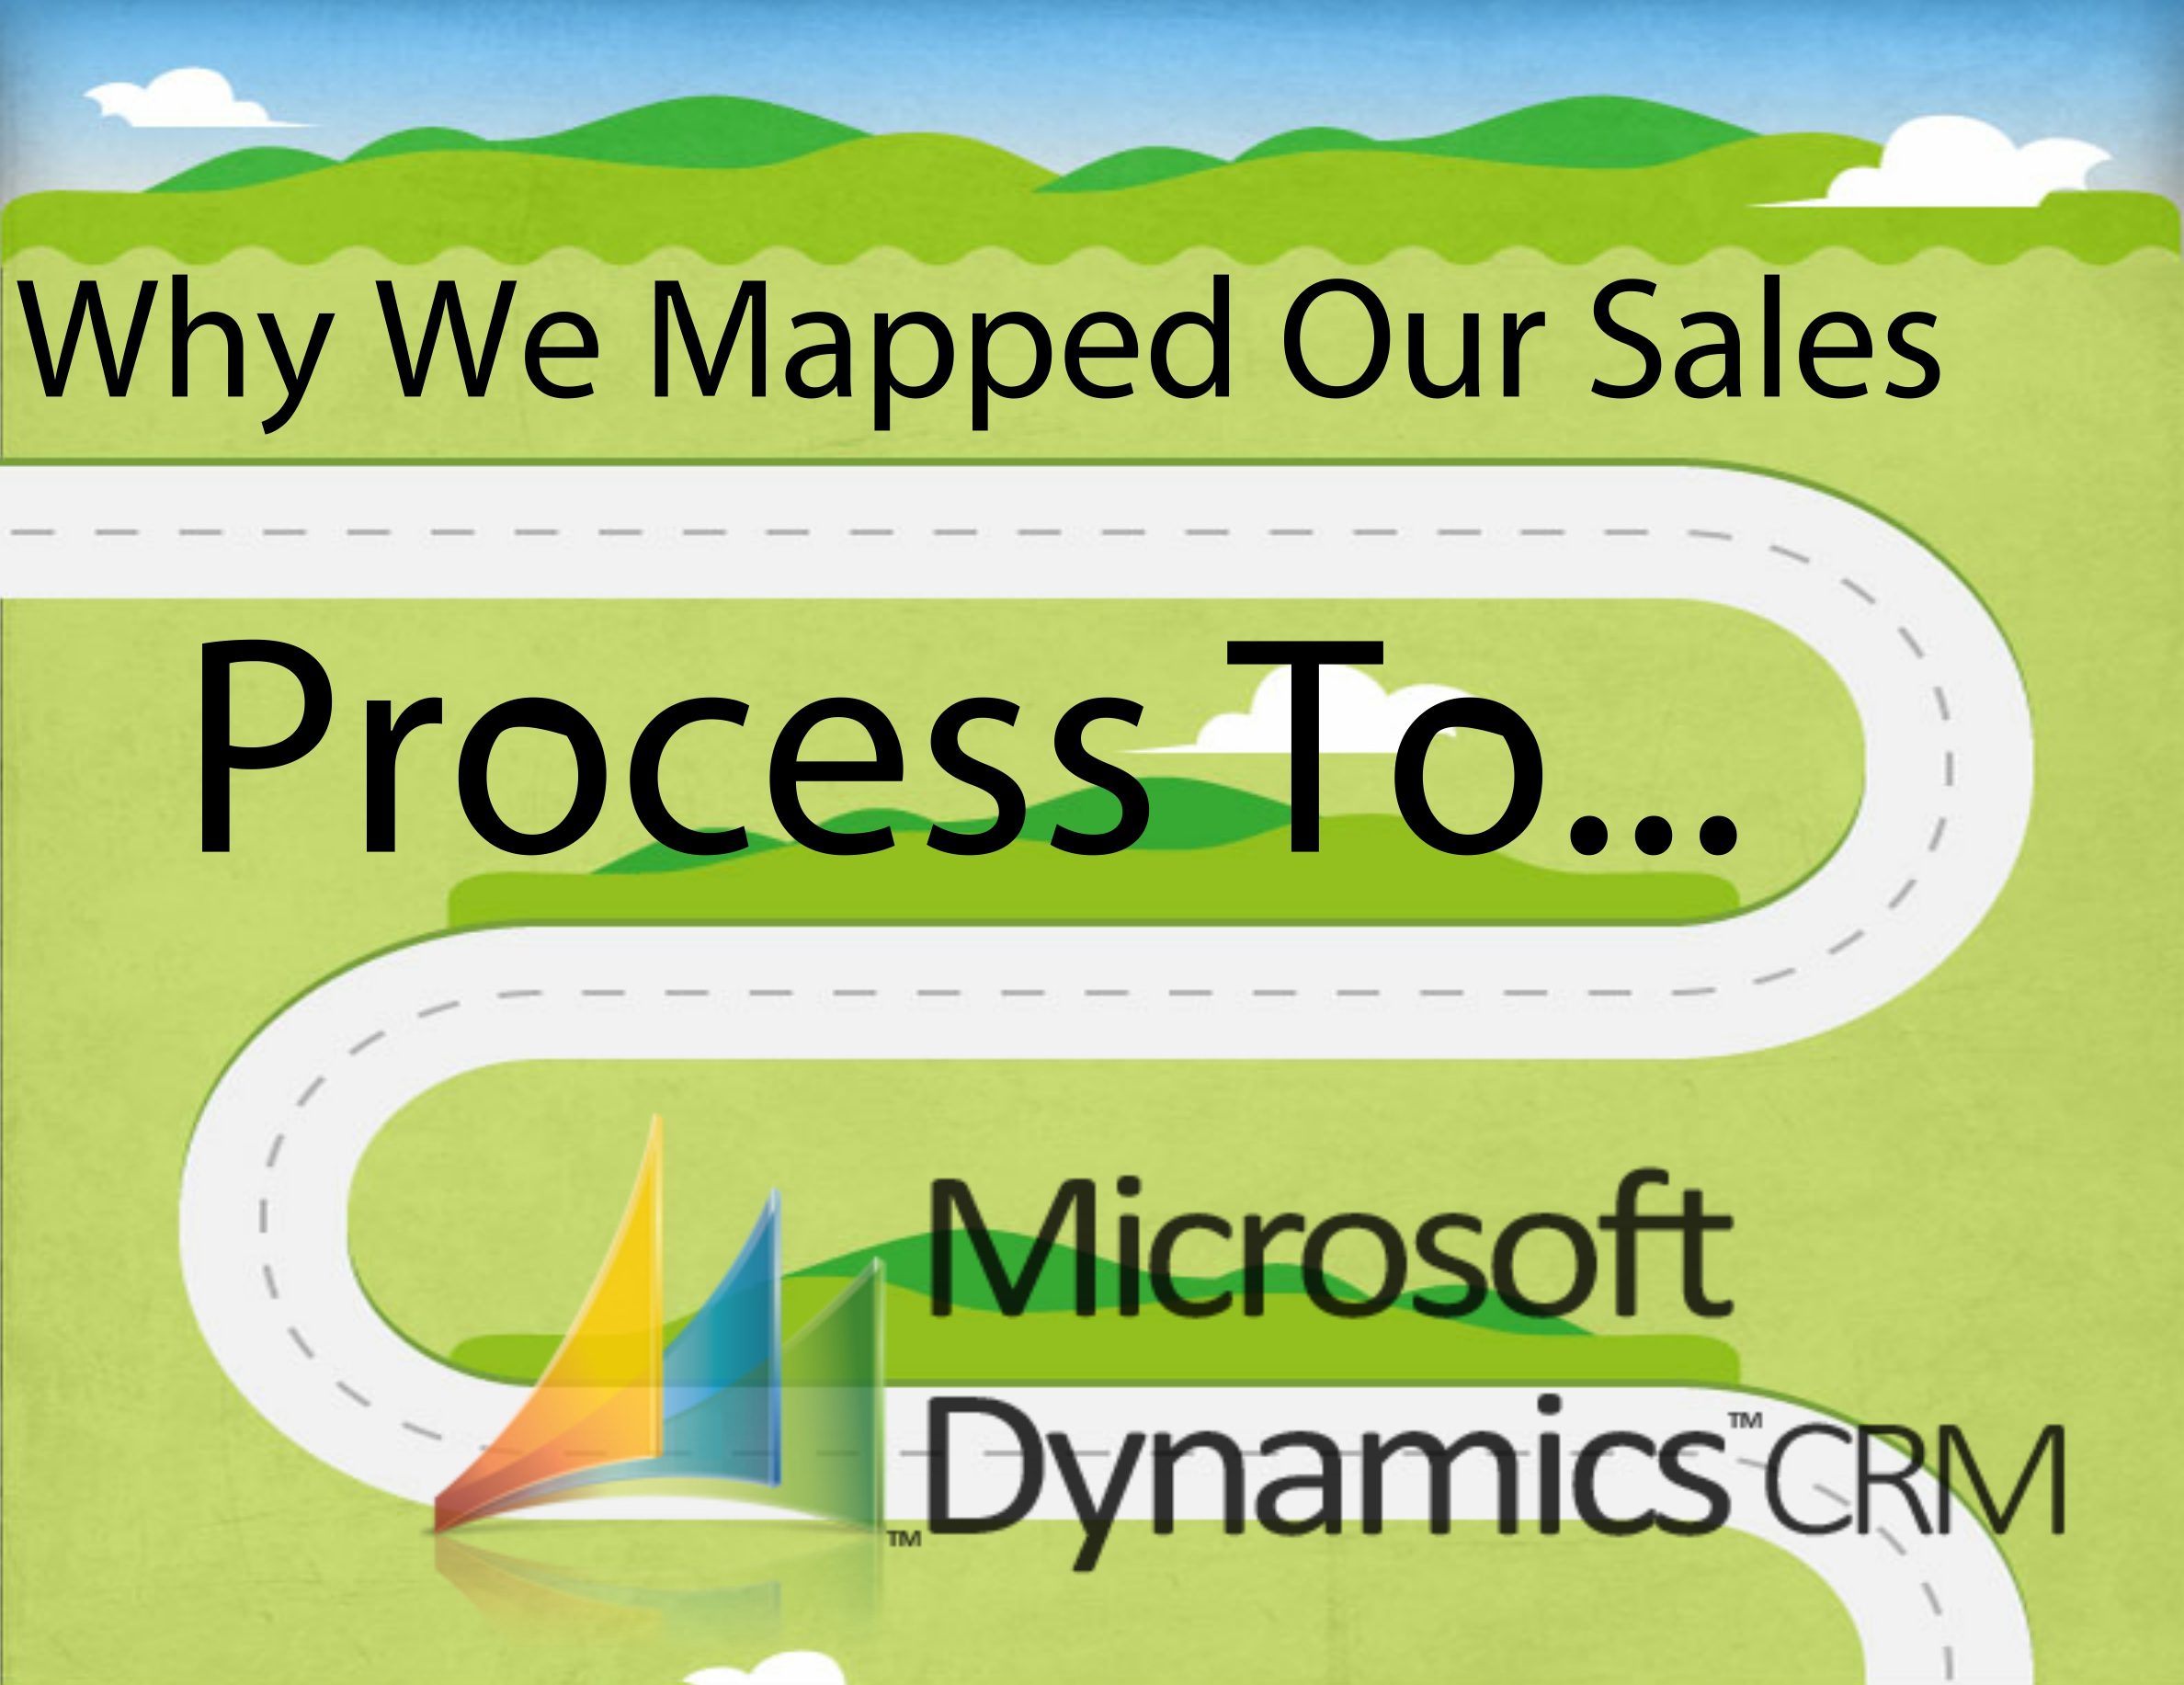 Mapping Dynamics CRM To Sales Process | Why We Did It...